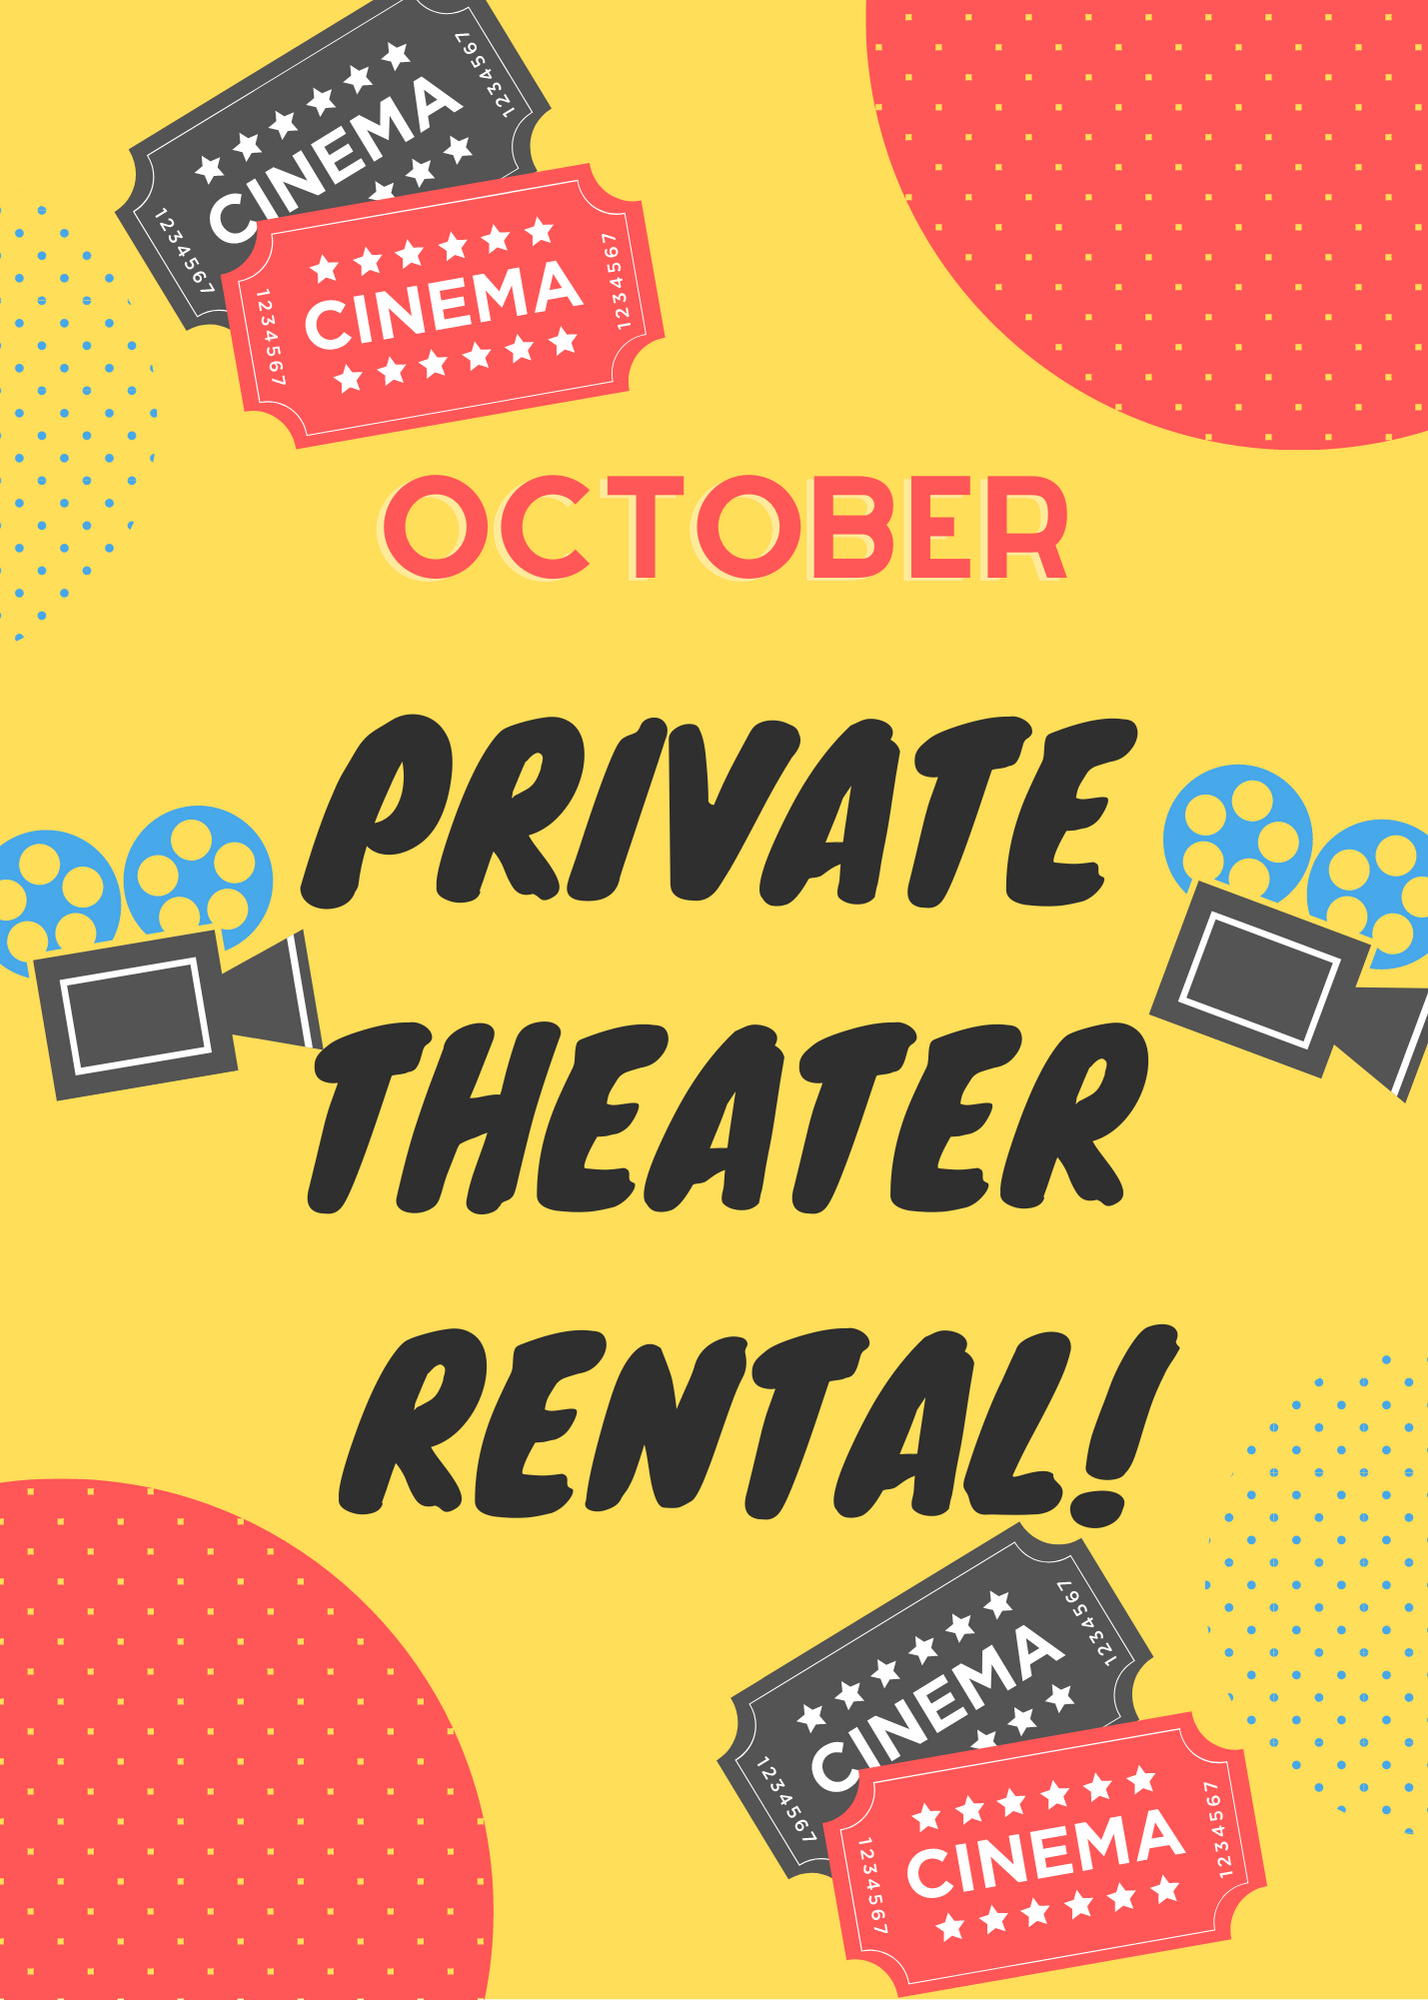 Poster for October Private Theater Rental